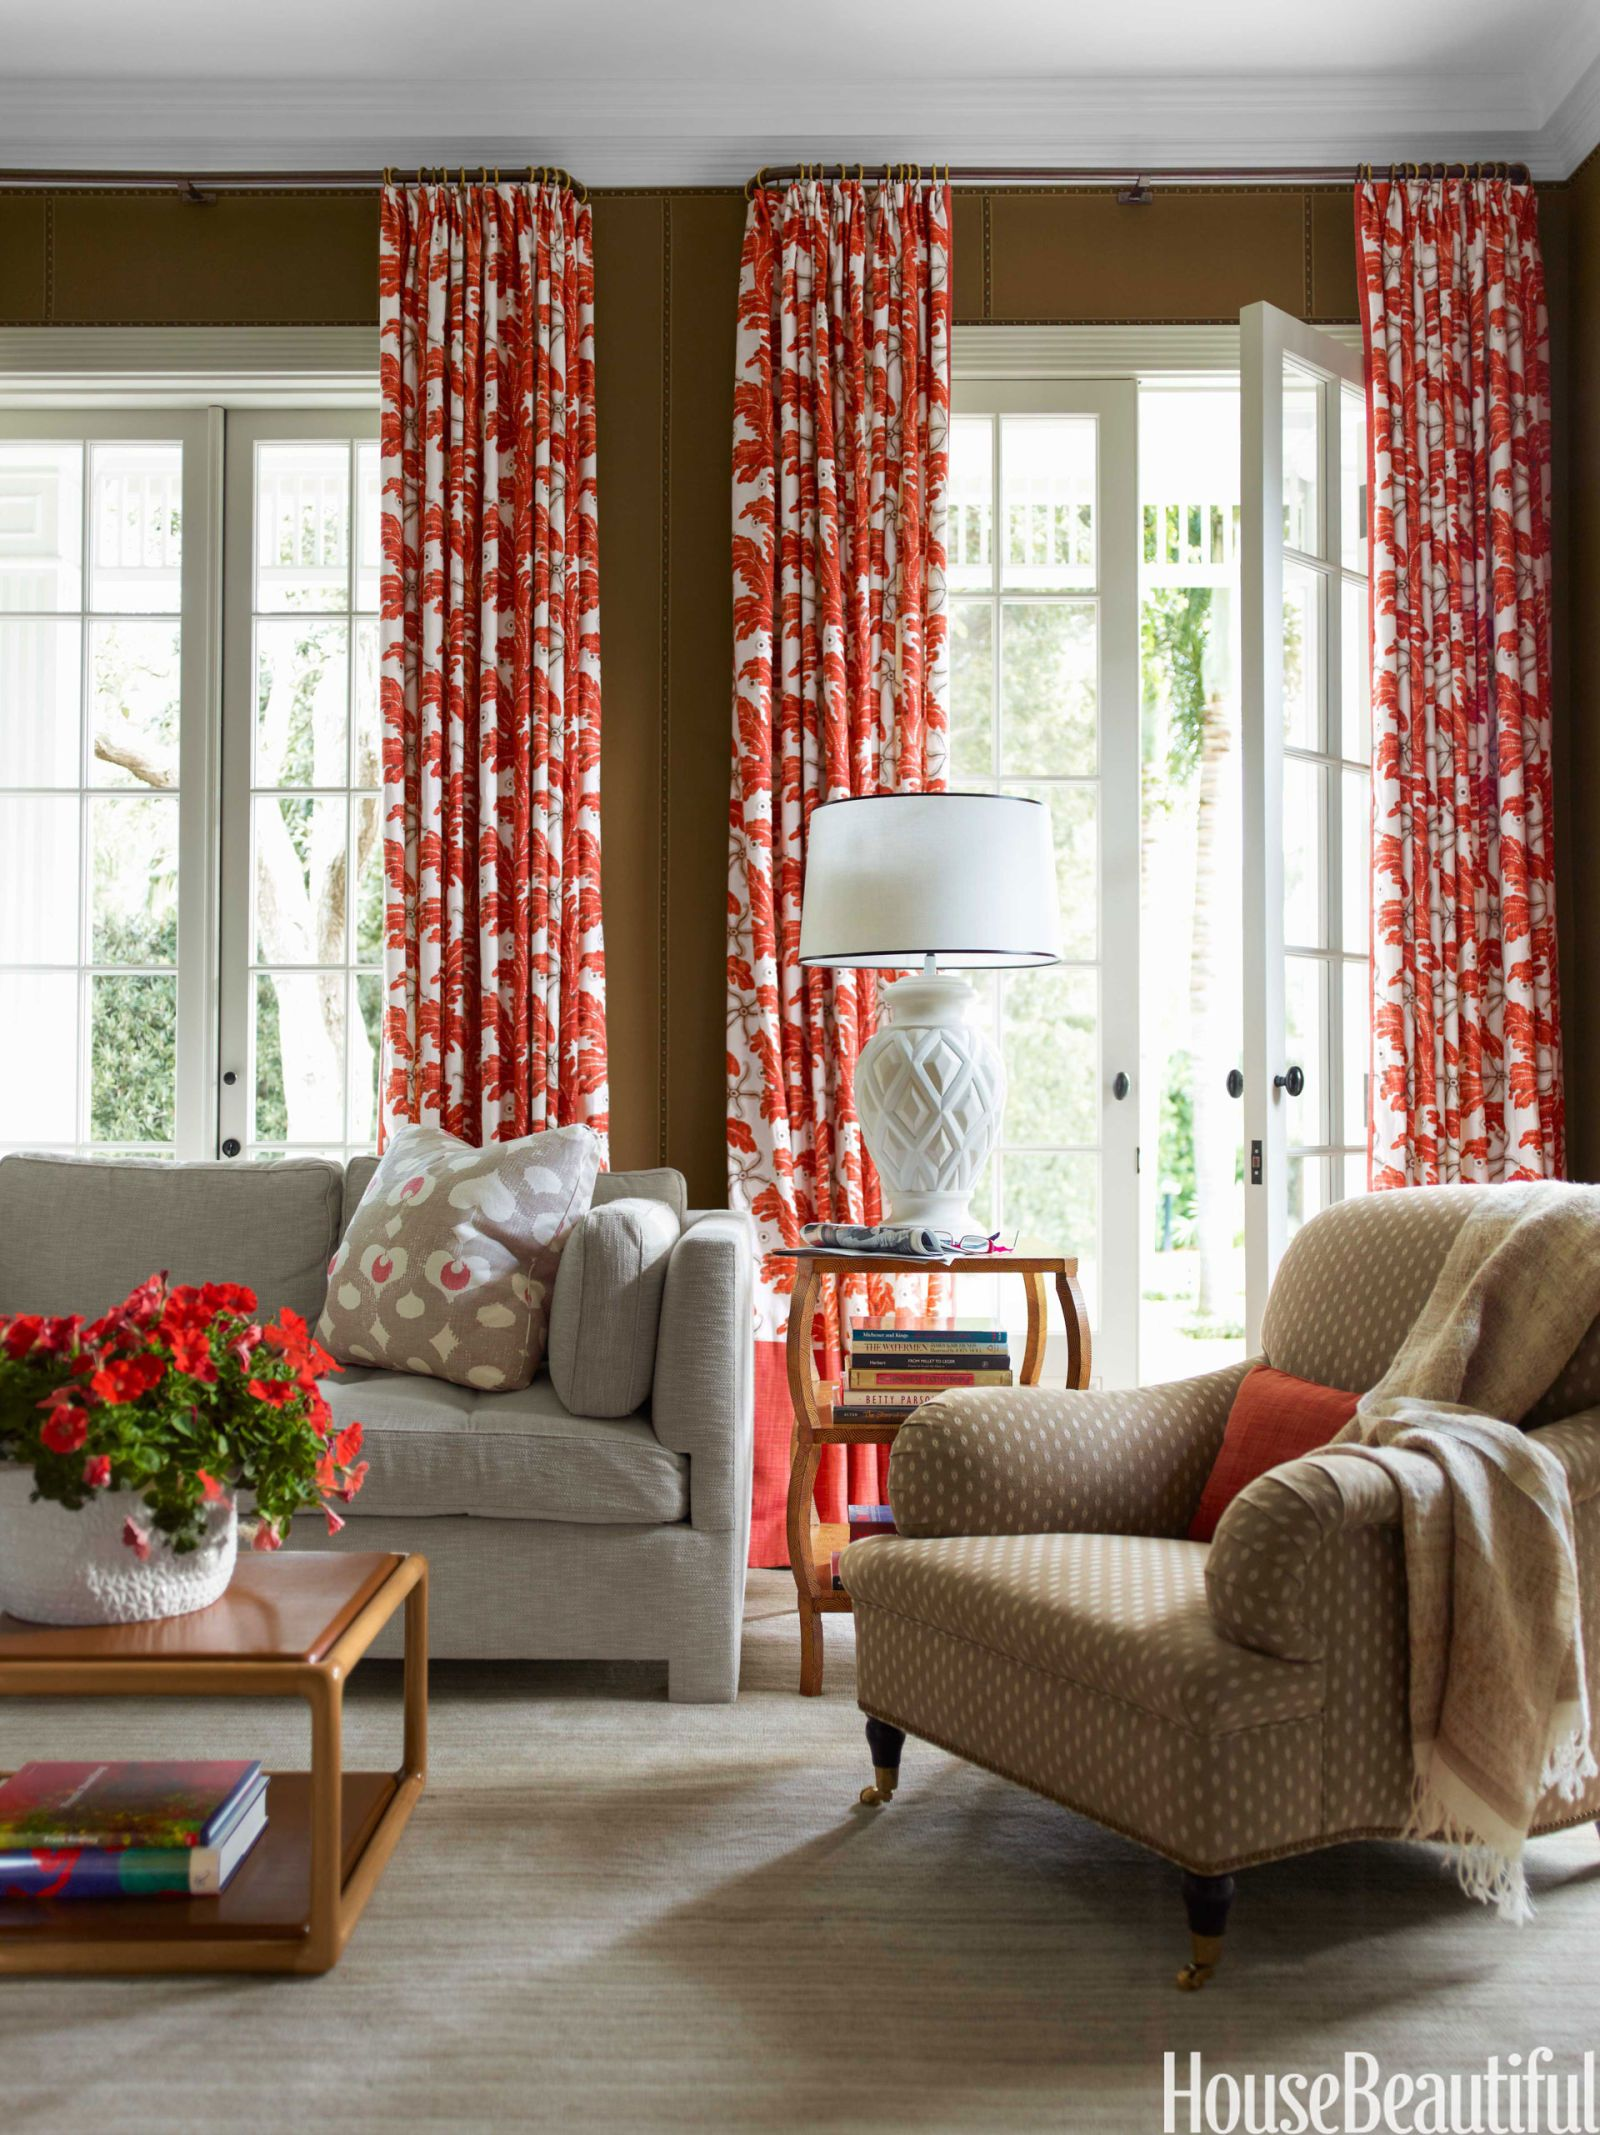 Hanging Curtains On Walls Without Windows 34 Best Window Treatment Ideas Modern Curtains Blinds Coverings